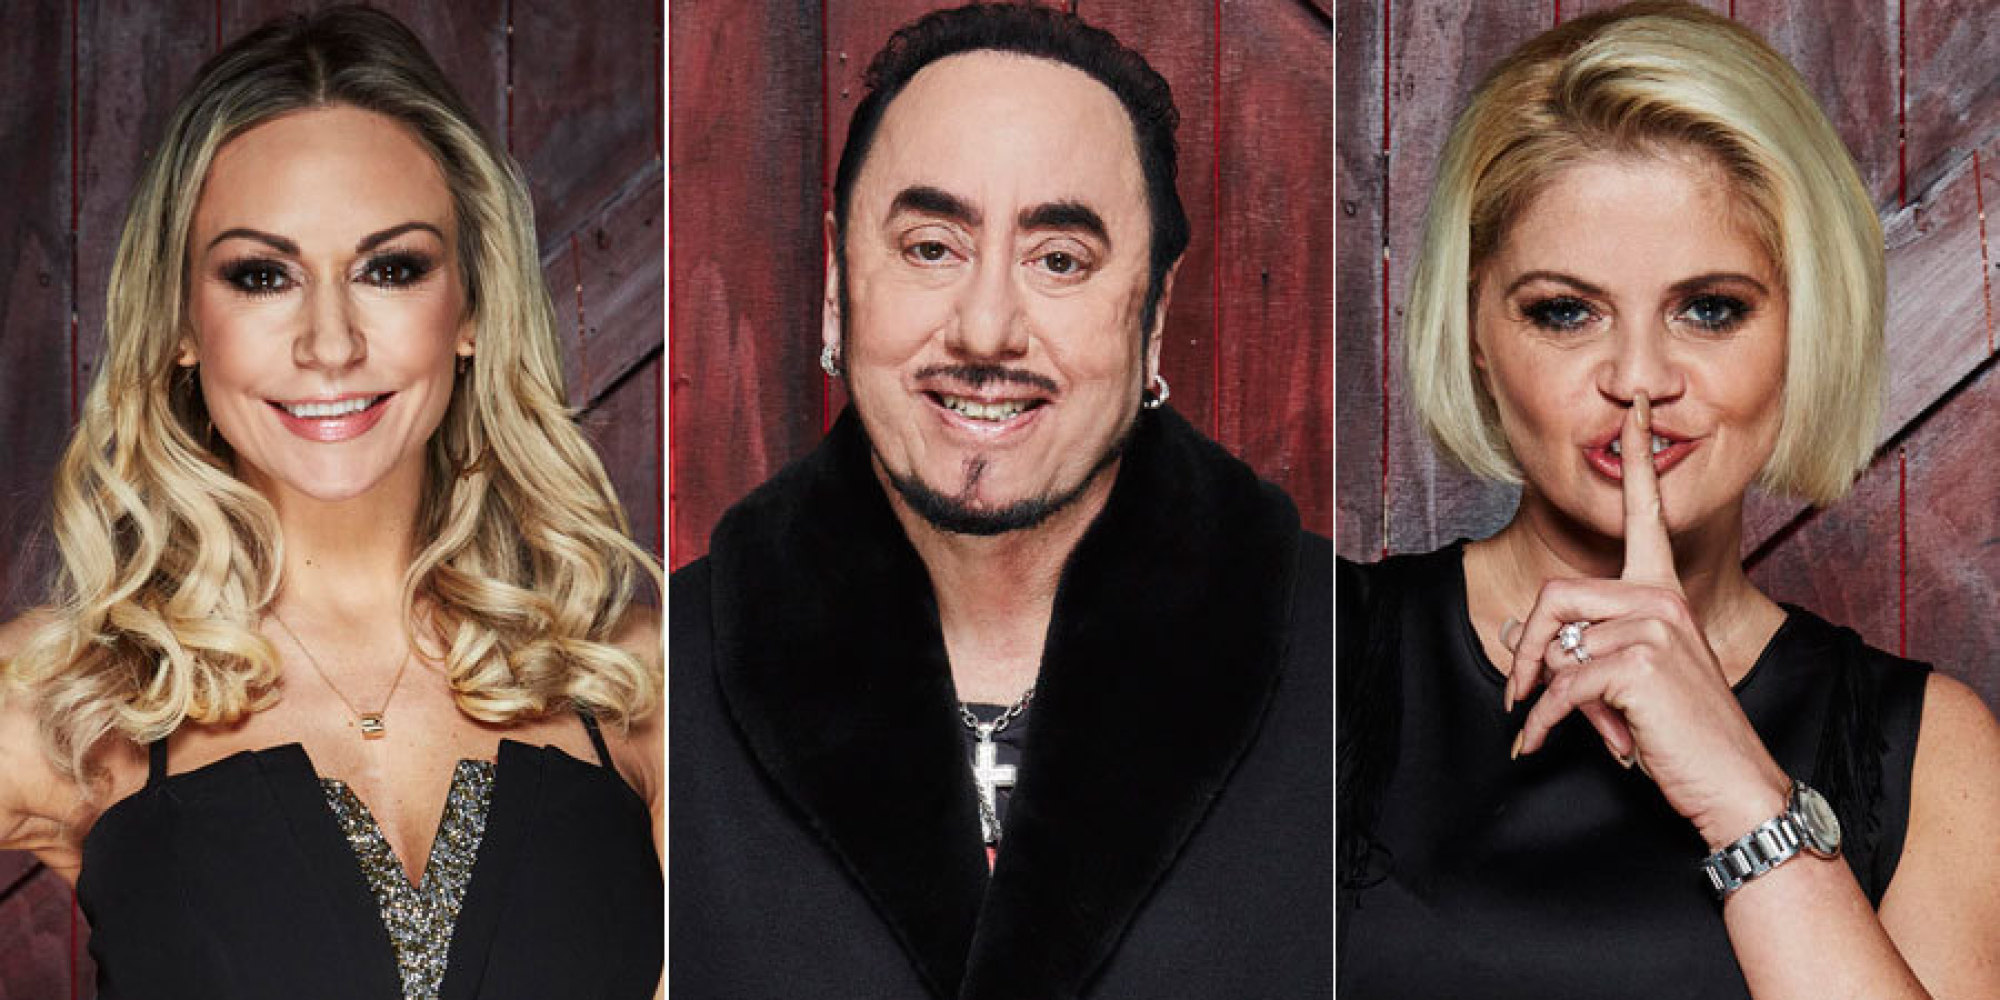 'Celebrity Big Brother' spoiler: Final 5 eviction nominees ...